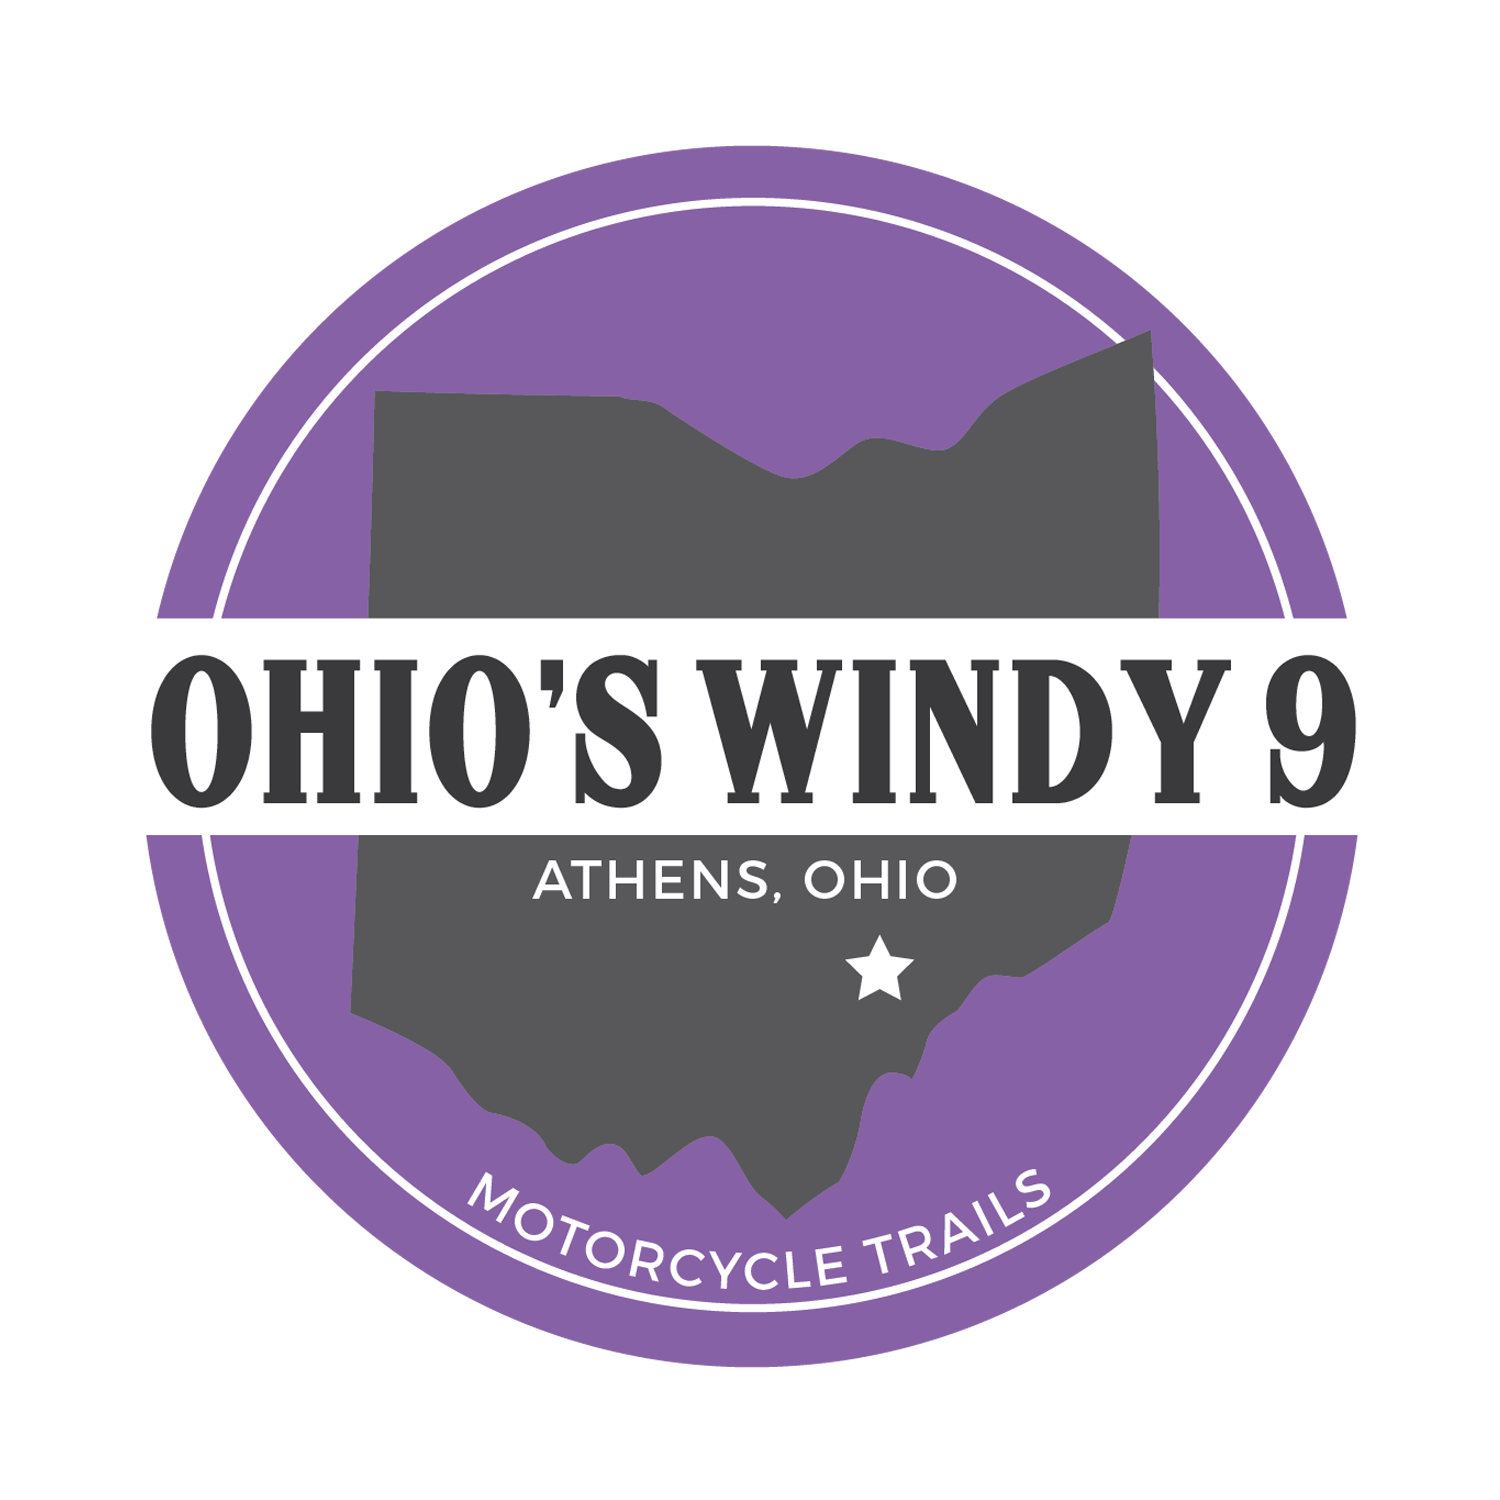 Ohio's Windy 9